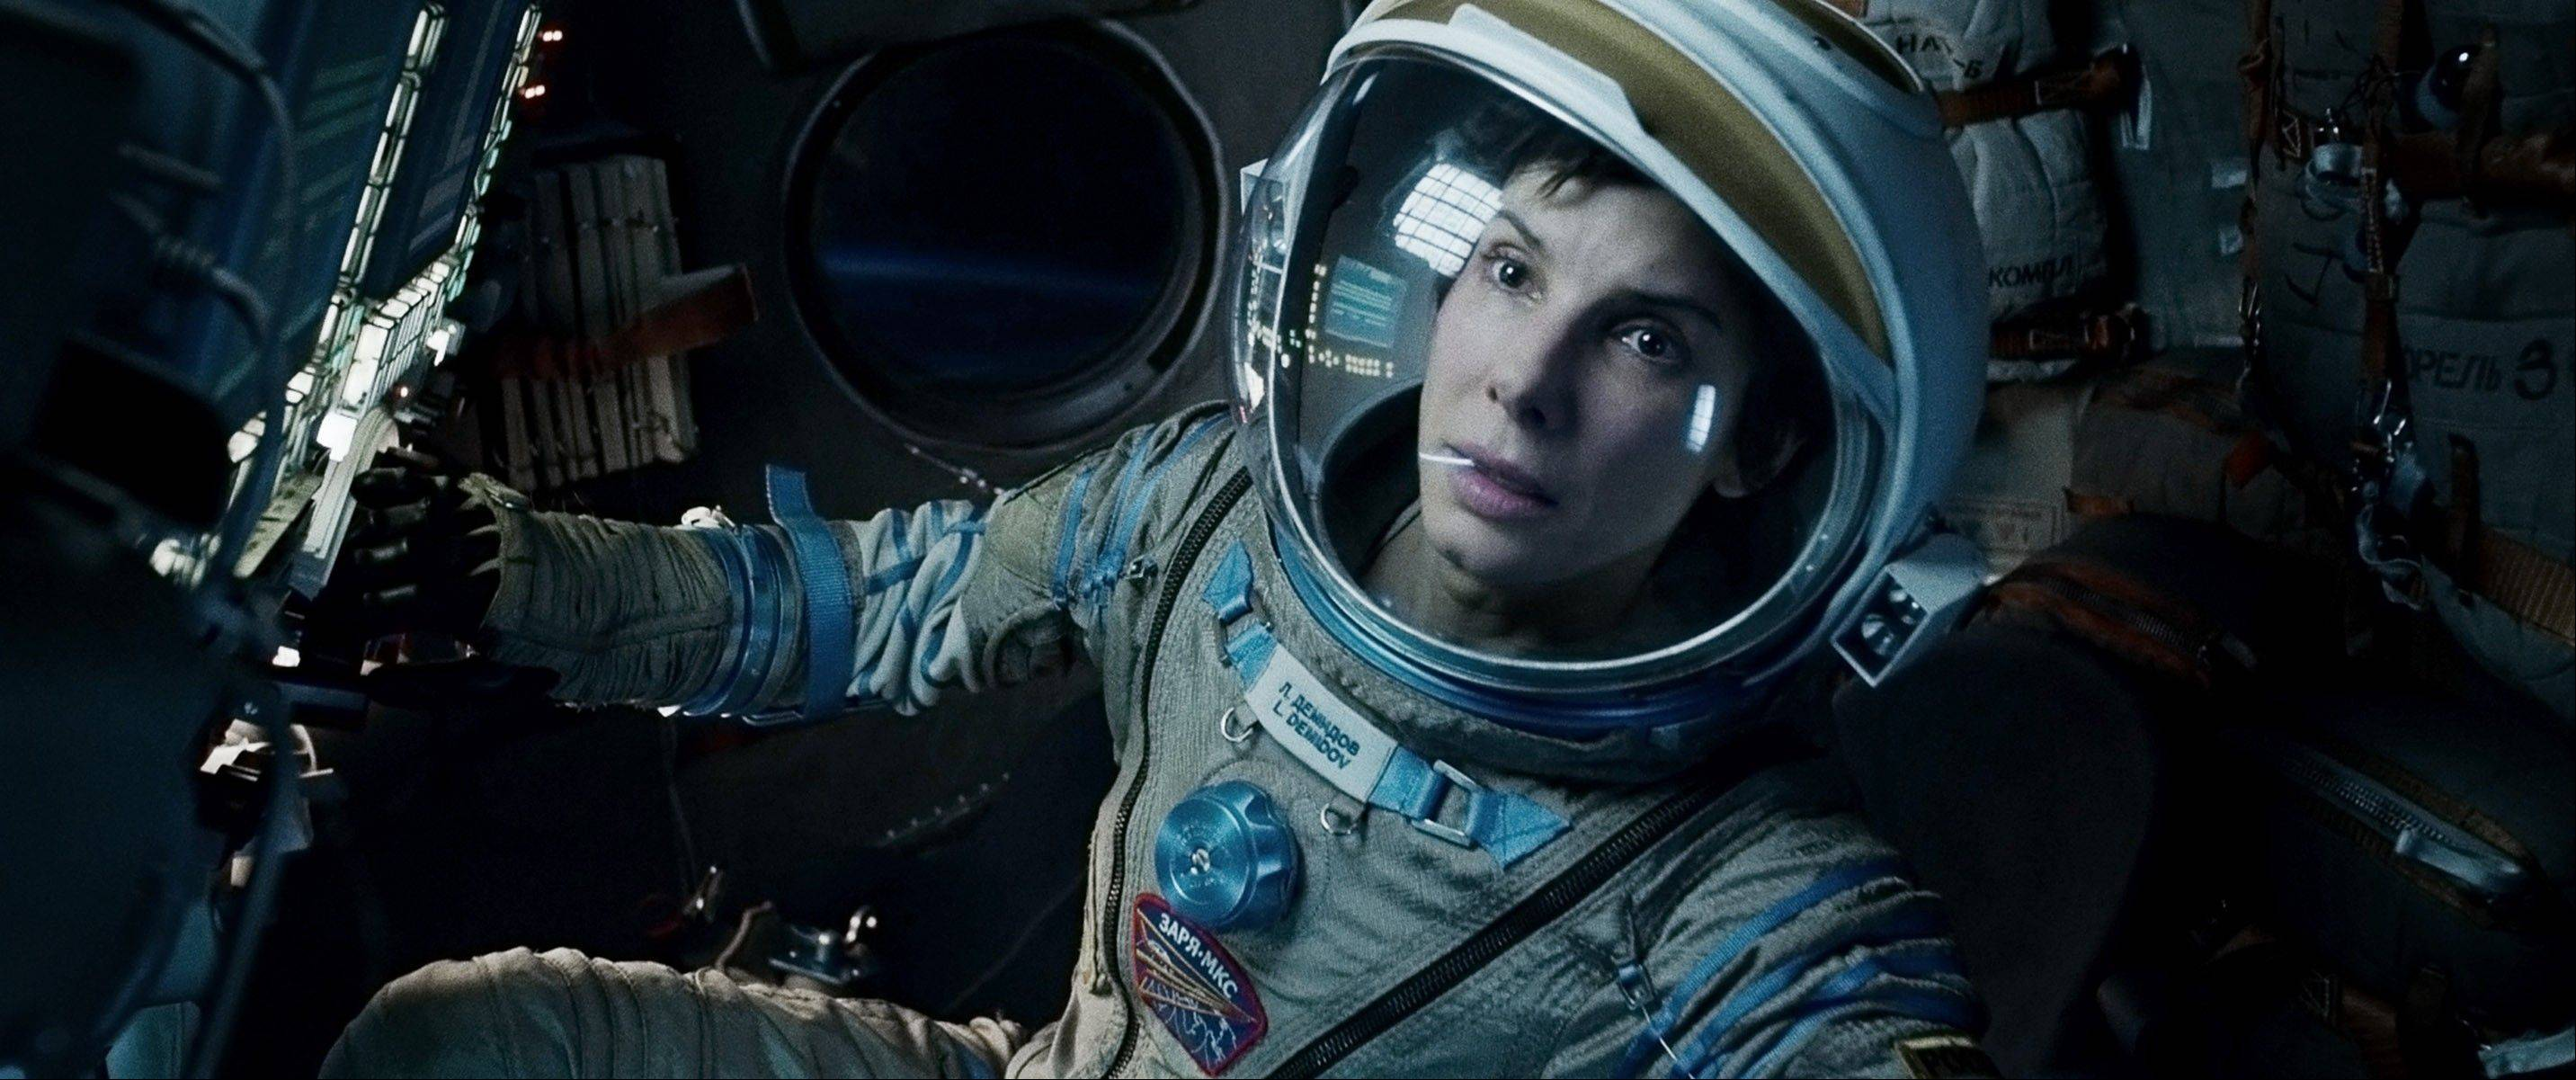 �Gravity,� starring Sandra Bullock and George Clooney, landed the top spot at the box office for the week in a row.